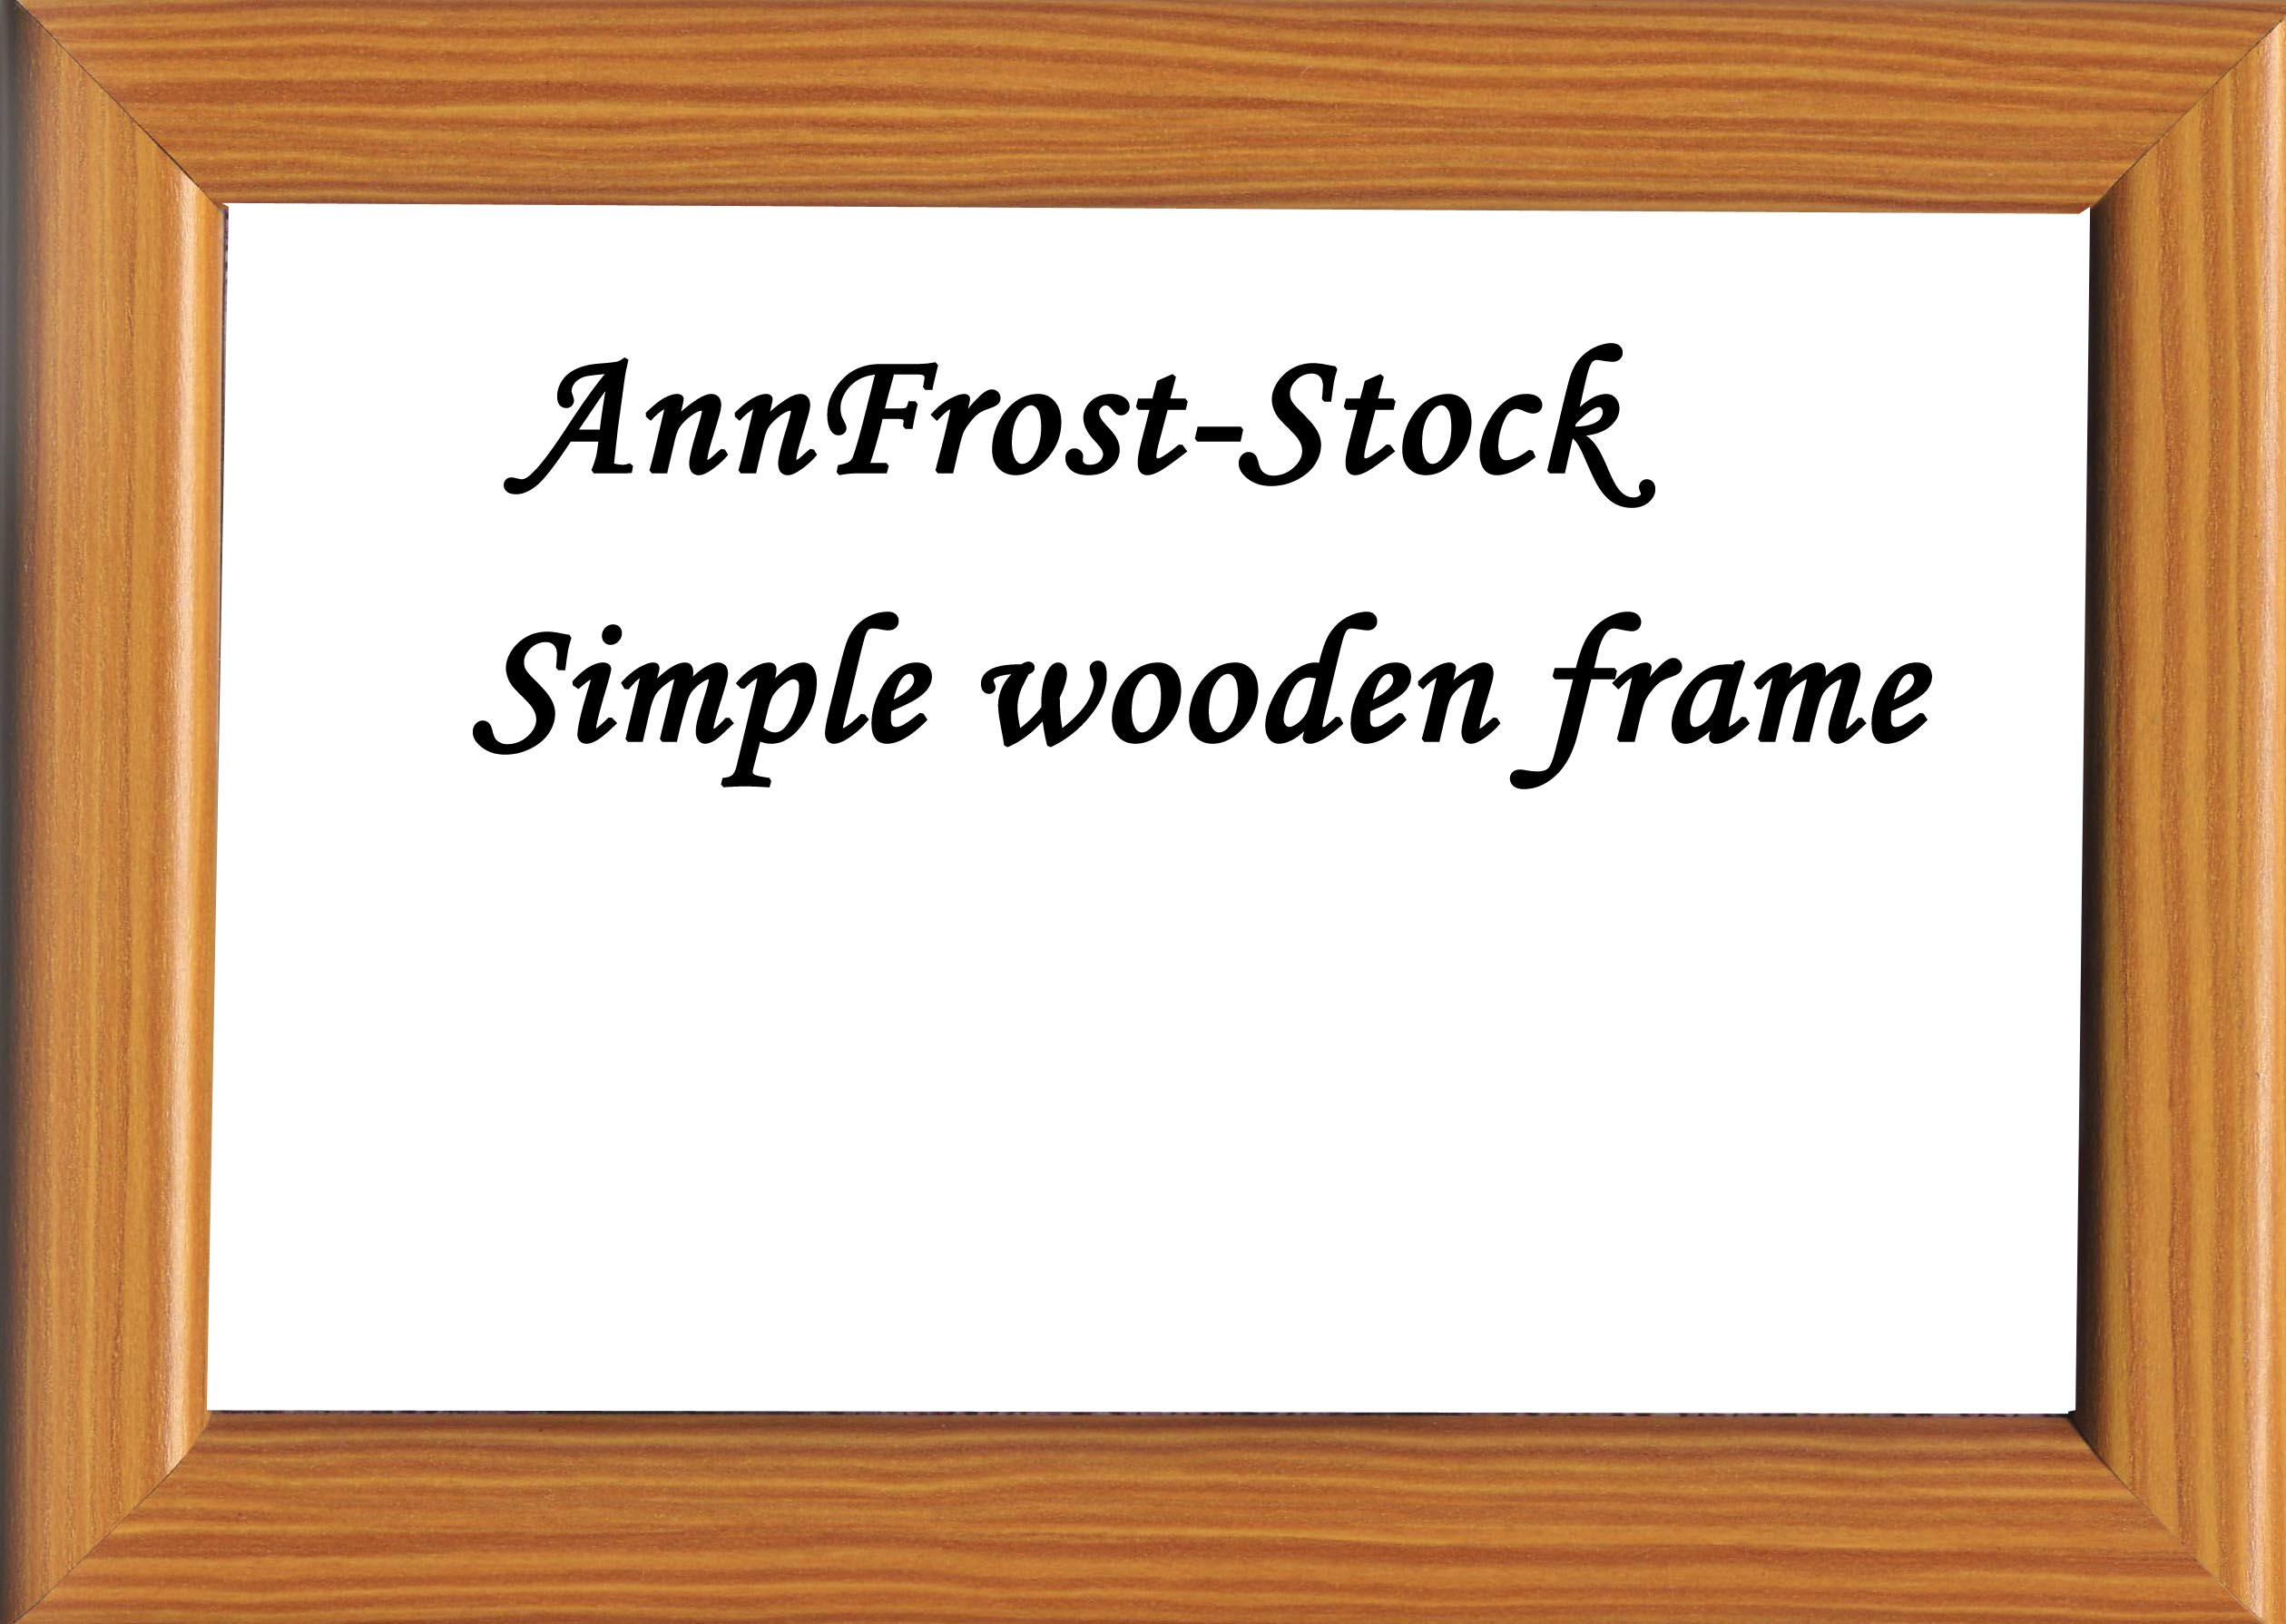 simple wooden frame by annfrost stock - Wooden Frames